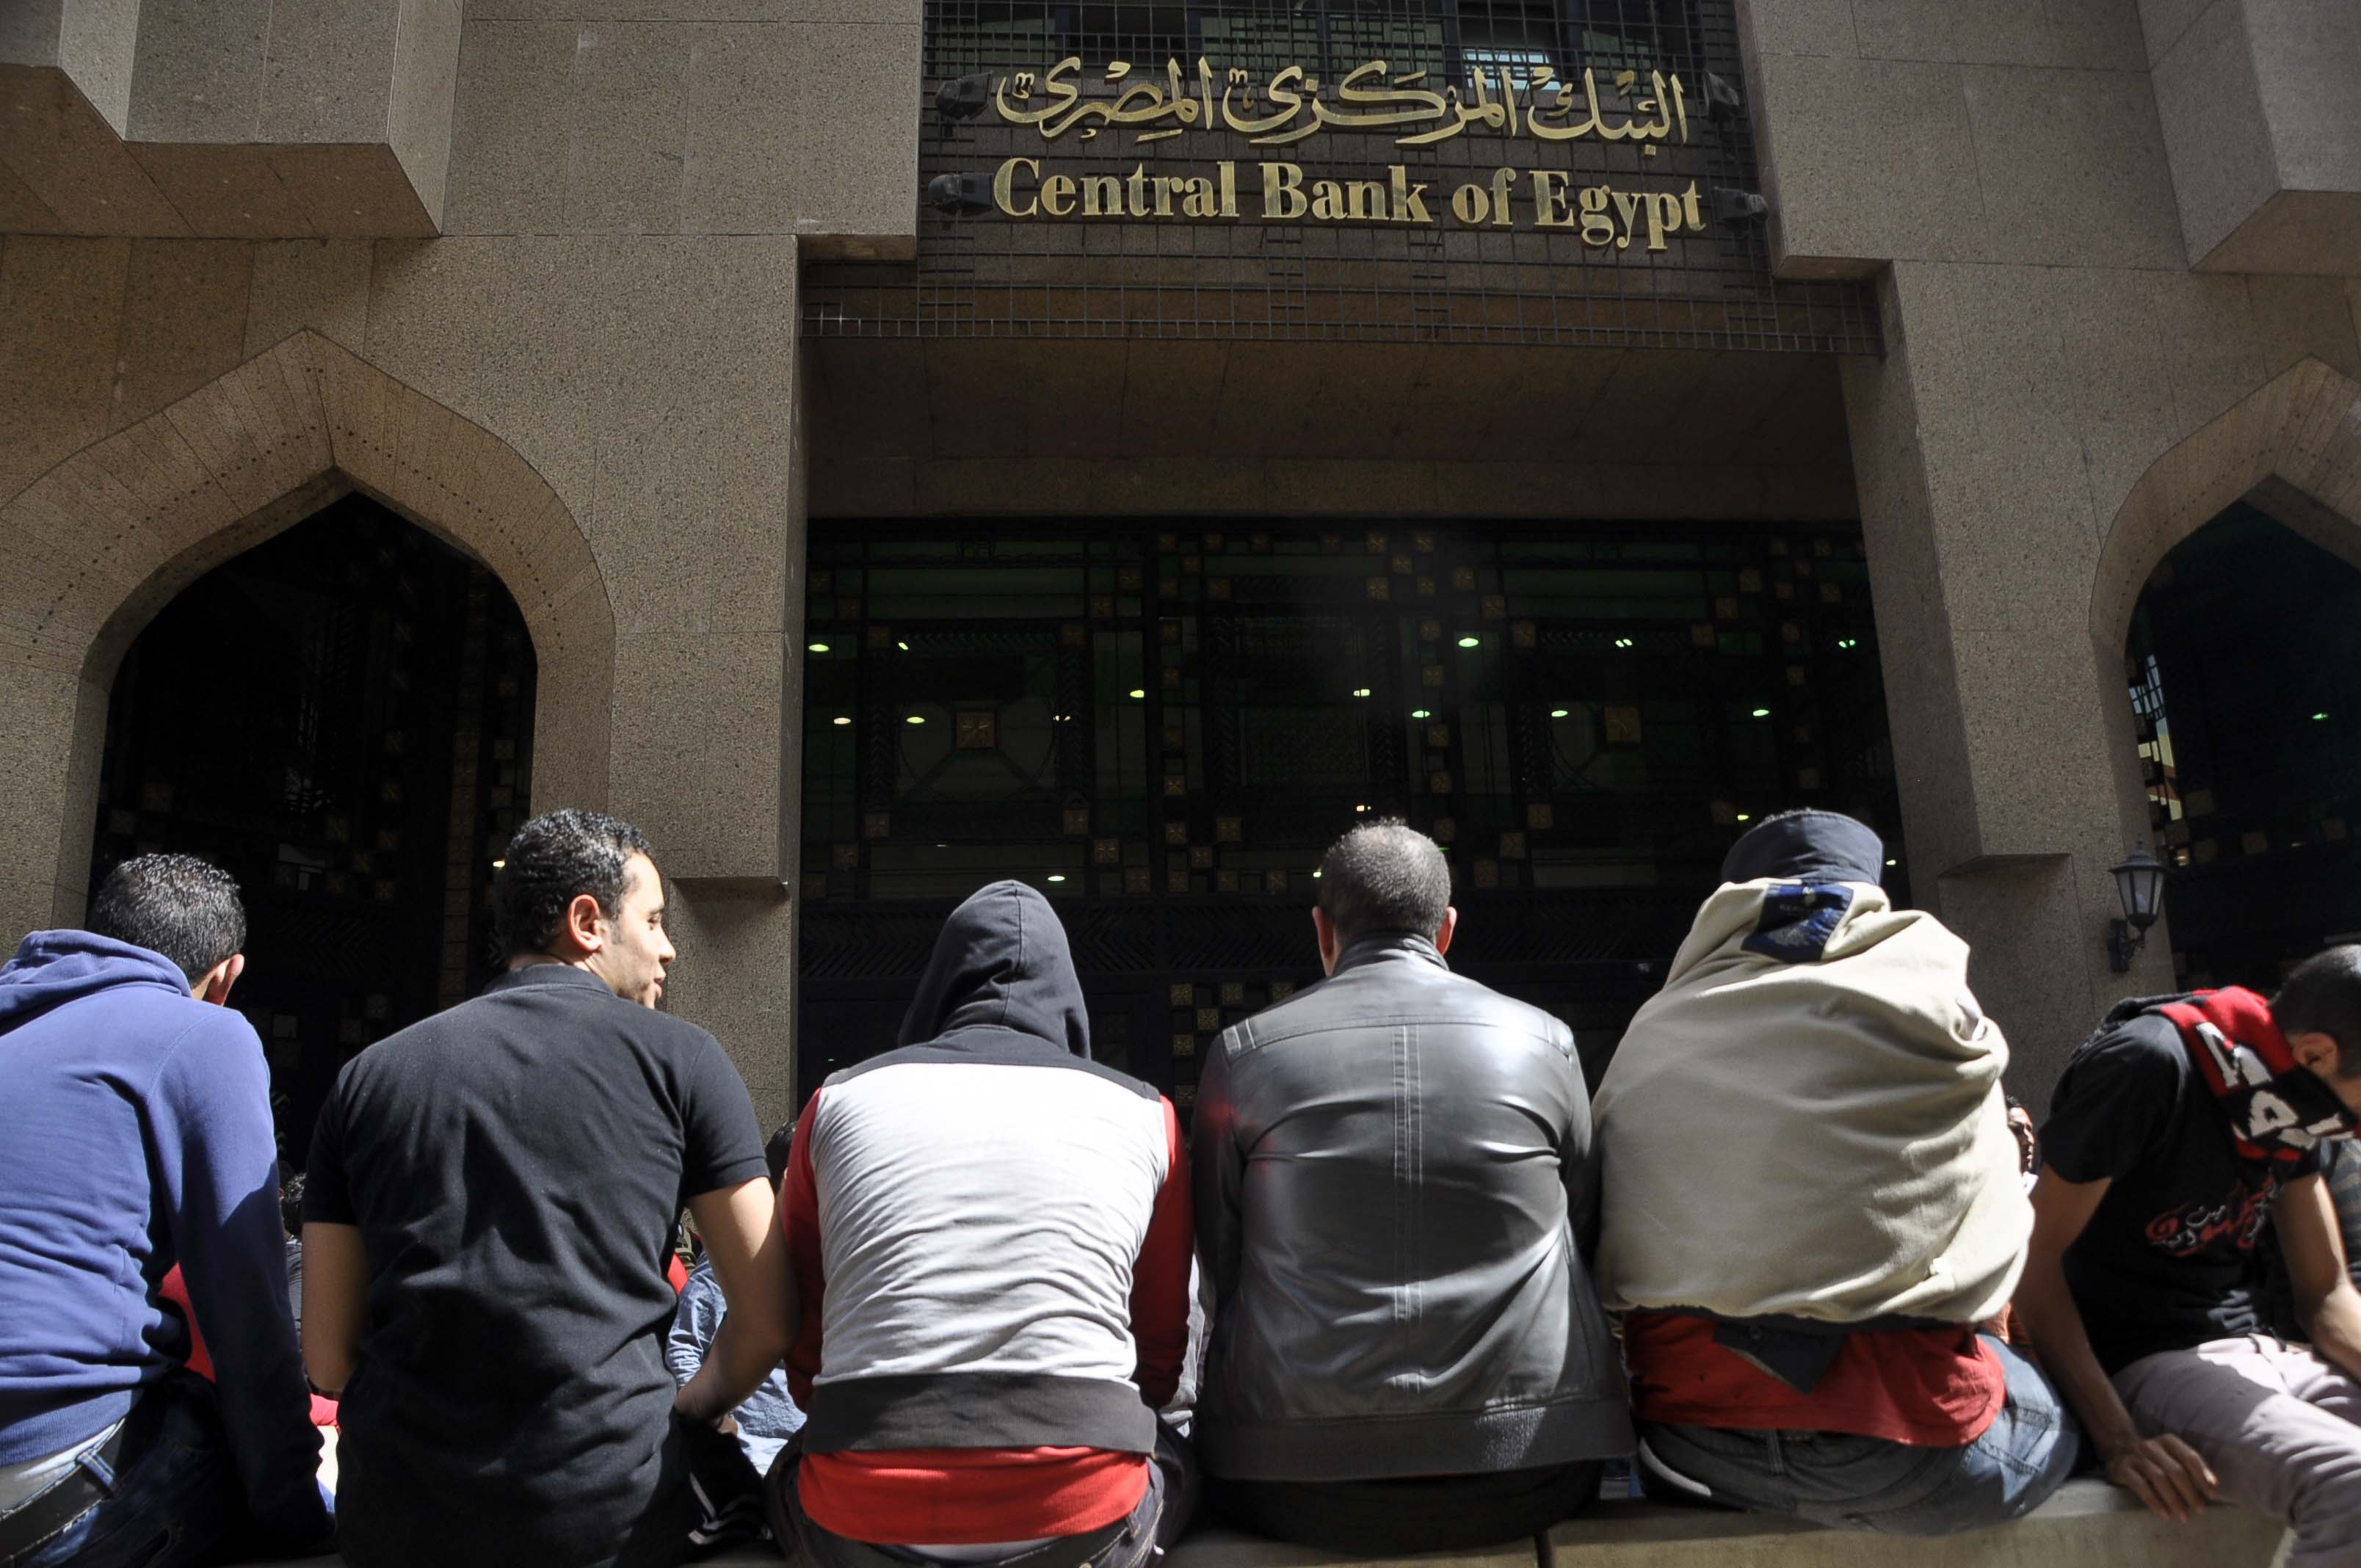 The Ultras surrounded the Central Bank of Egypt in Downtown Cairo early on Sunday preventing employees from entering the building. They also blocked the road to the Cairo International Airport. (Photo by Ahmed El- Malky)